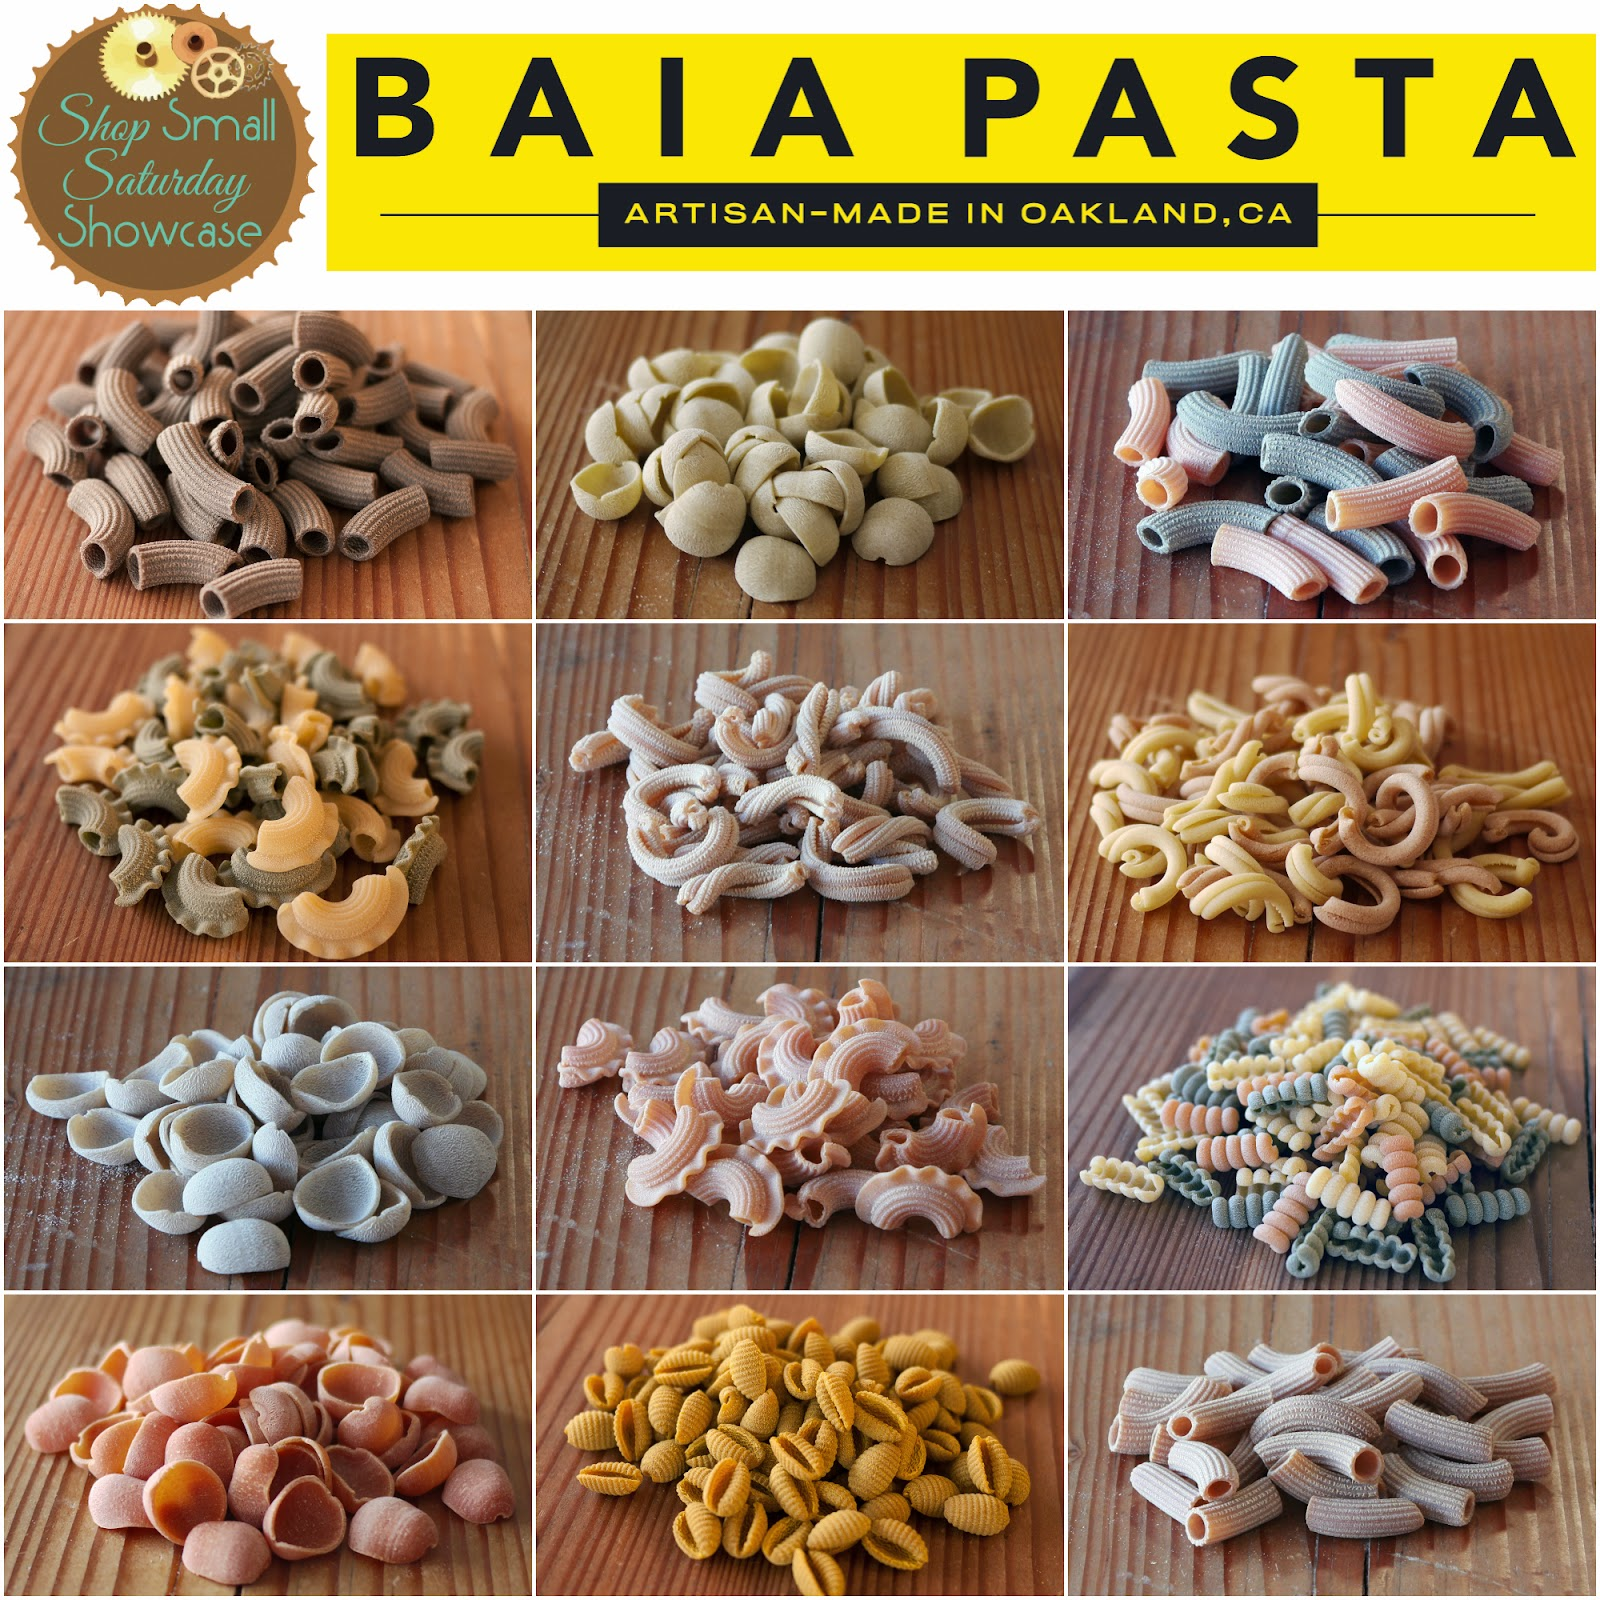 Baia Pasta feature on Shop Small Saturday at Diane's Vintage Zest!